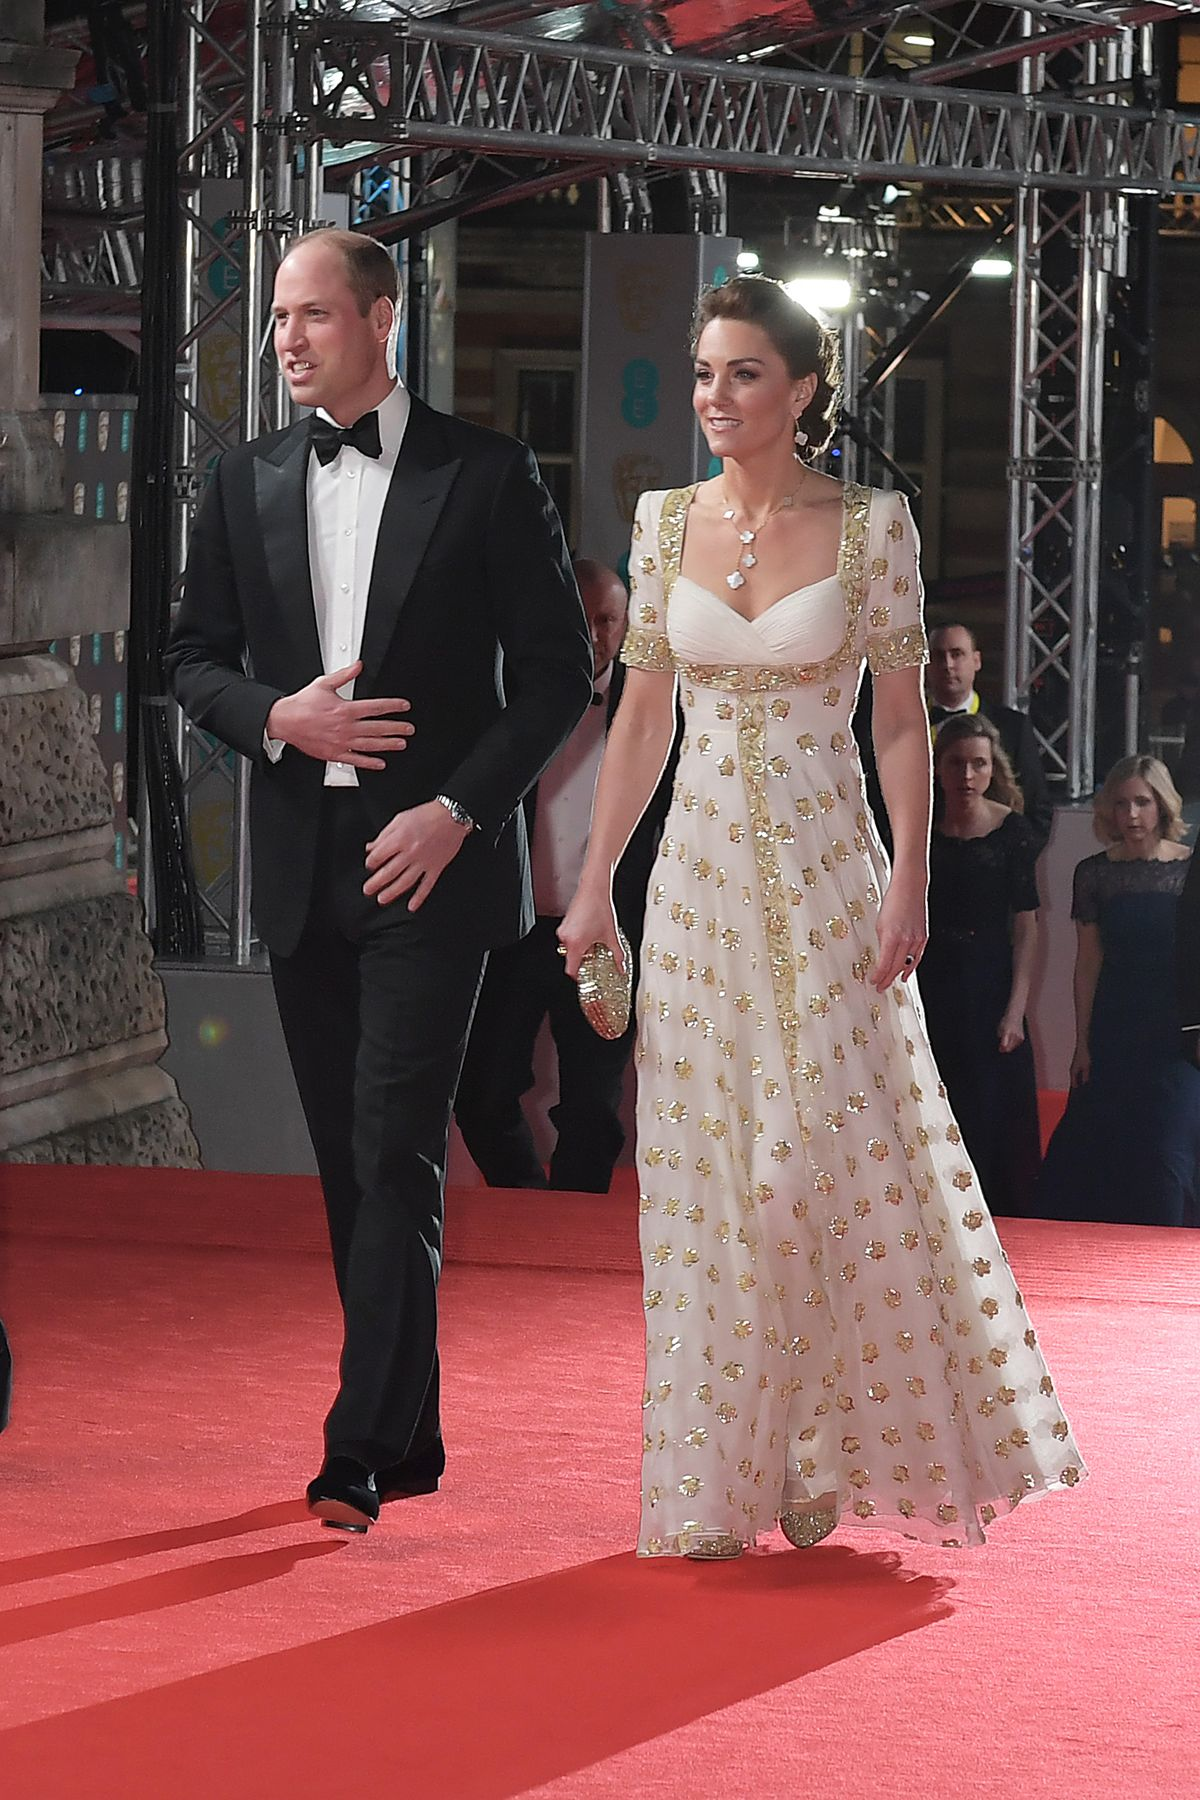 Kate Middleton Proves She's The Queen Of Outfit Recycling At The BAFTAs 2020